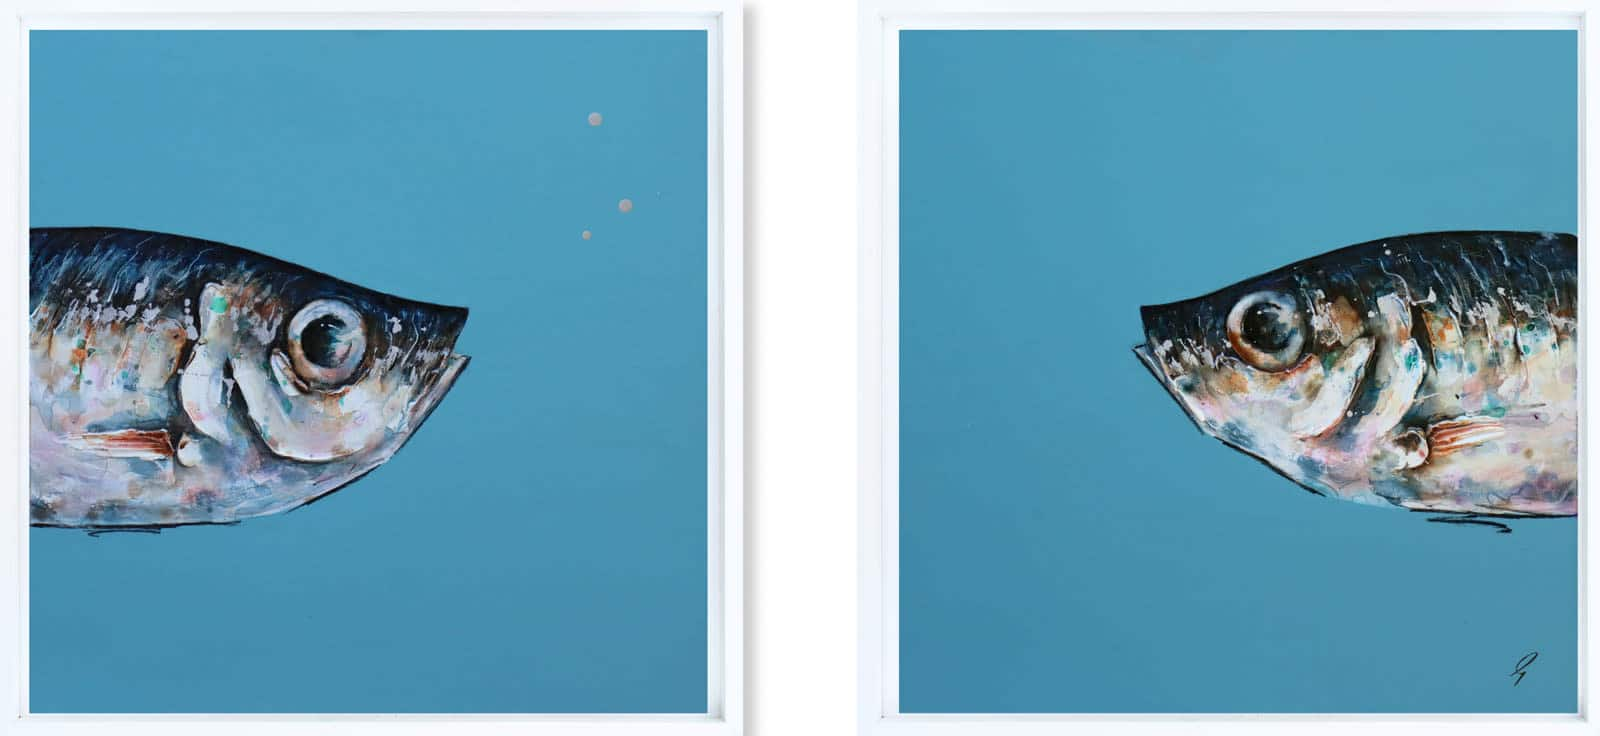 We Are The Same (Diptych)